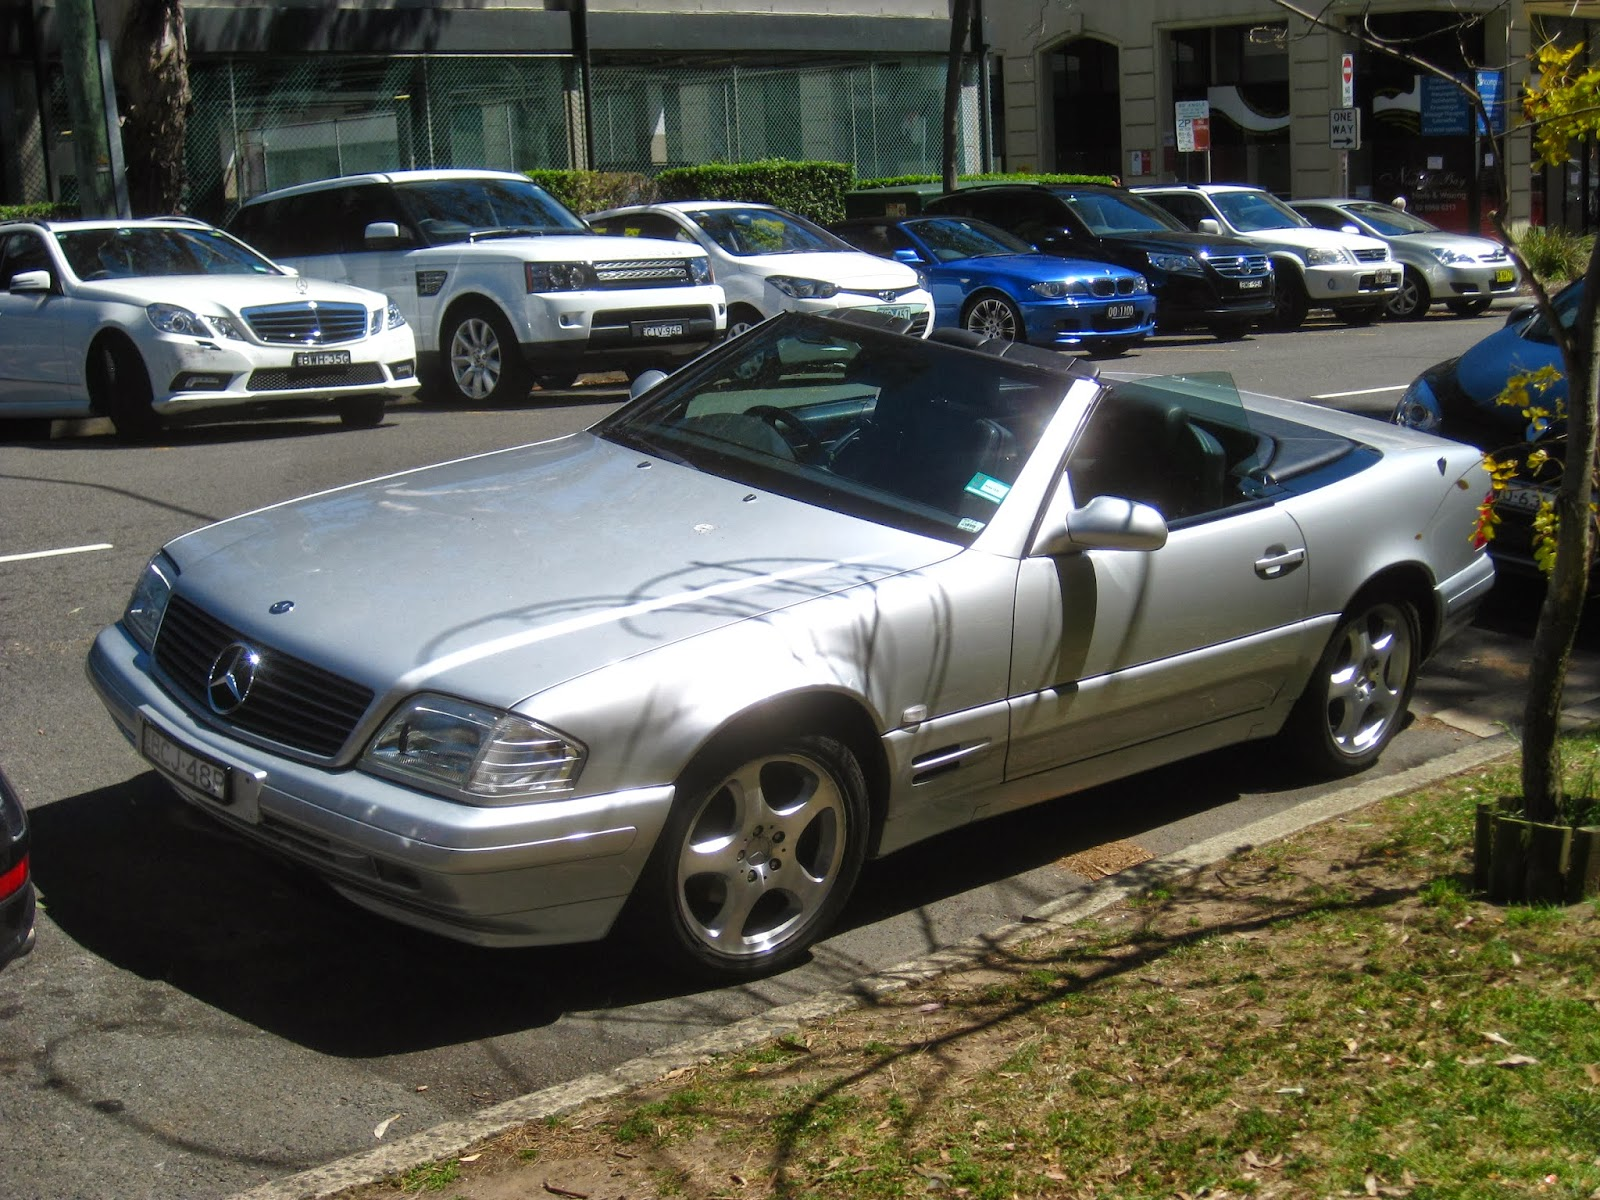 aussie old parked cars 1999 mercedes benz r129 sl 320. Black Bedroom Furniture Sets. Home Design Ideas